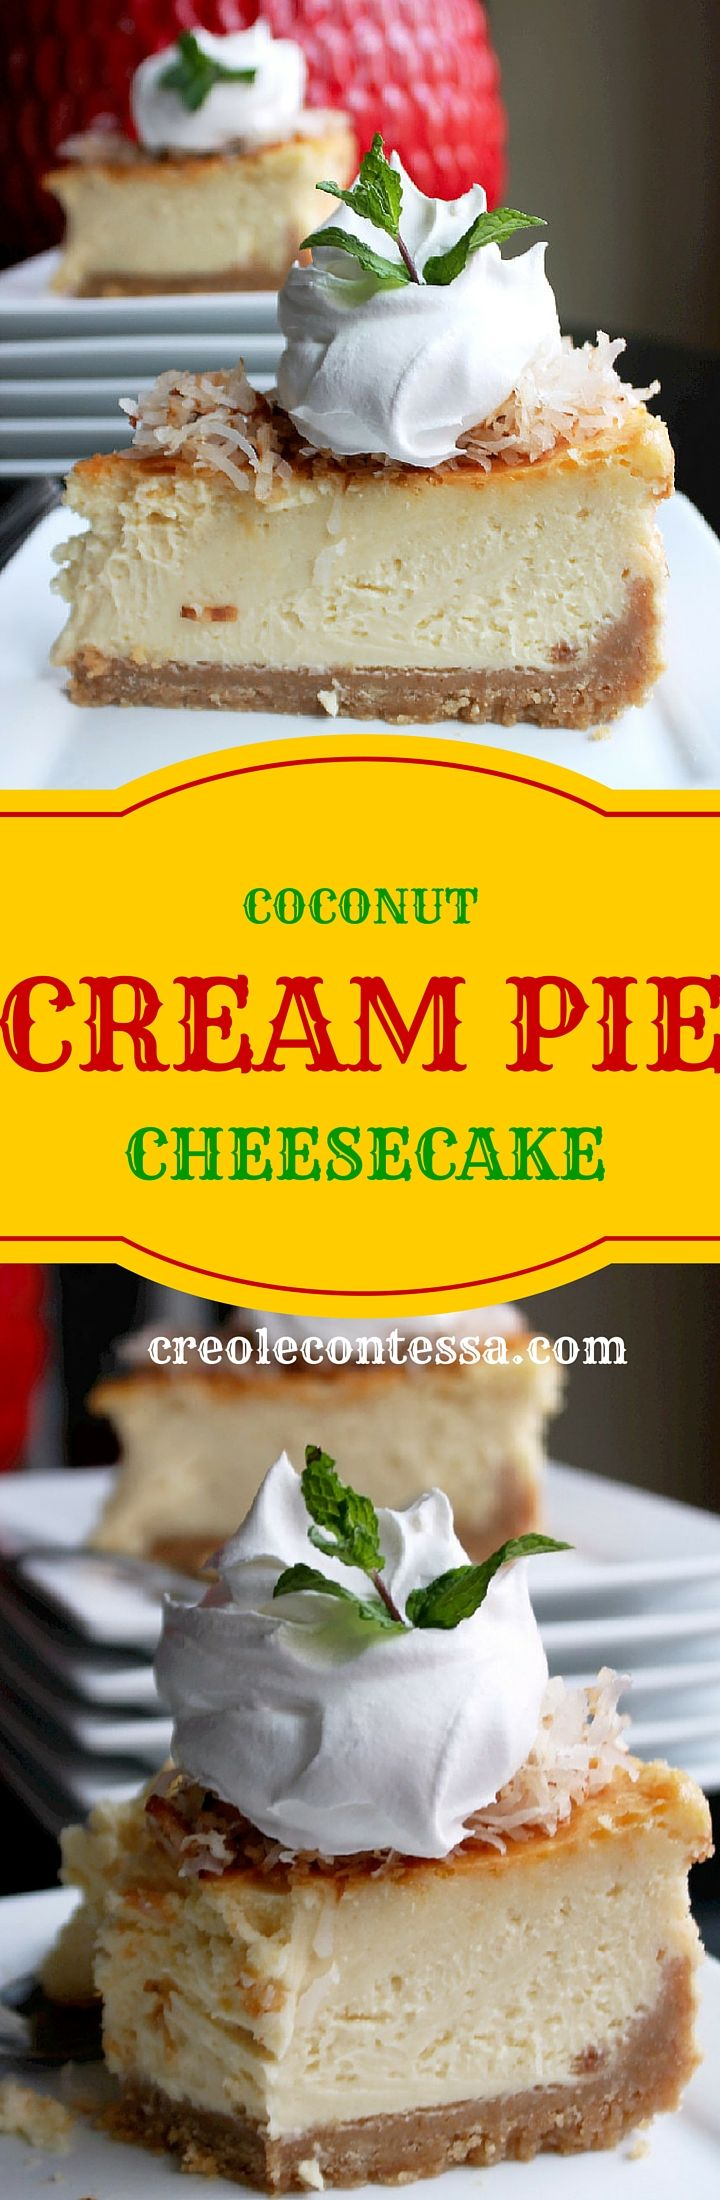 Coconut Cream Pie Cheesecake with Coconut Cookie Crust-Creole Contessa